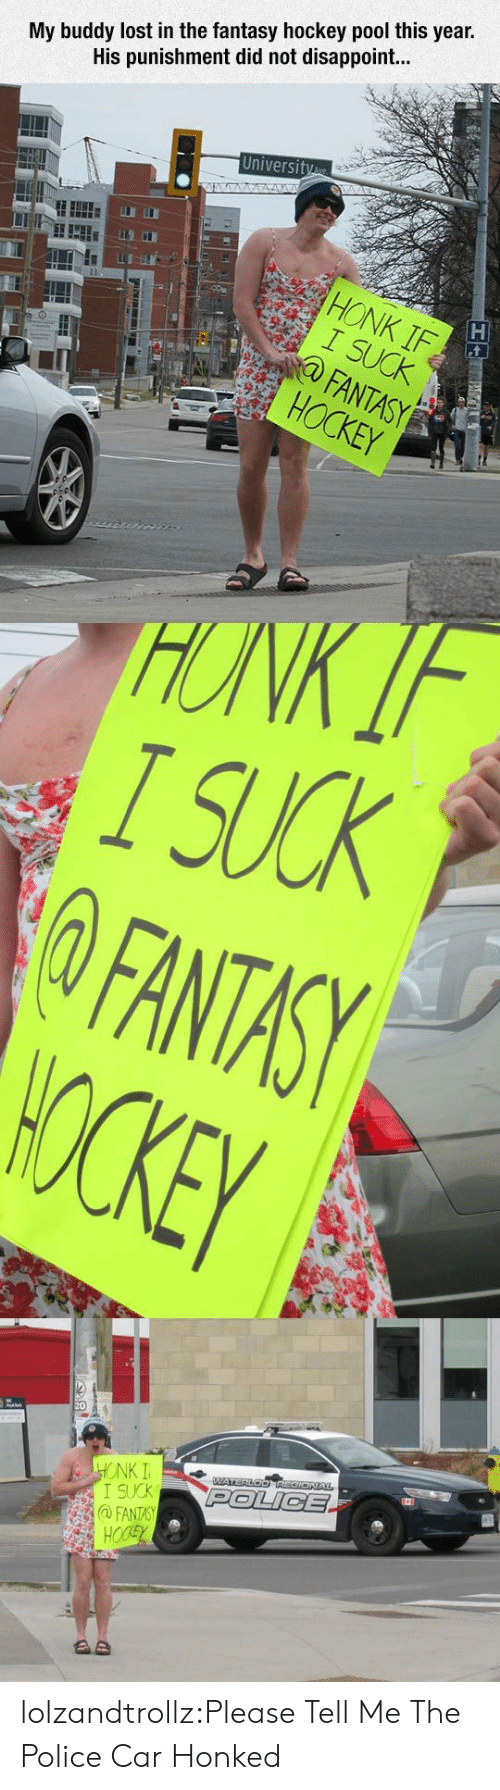 Hockey: My buddy lost in the fantasy hockey pool this year.  His punishment did not disappoint...  University  STA  HONK IF  I SUCK  FANTASY  HOCKEY  HONK IF  I SUCK  FANTASY  WOCKEY  HONK I  I SUCK  @FANTASY  HOCSY  WATERLOOREGIONAL  POLICE  AD lolzandtrollz:Please Tell Me The Police Car Honked